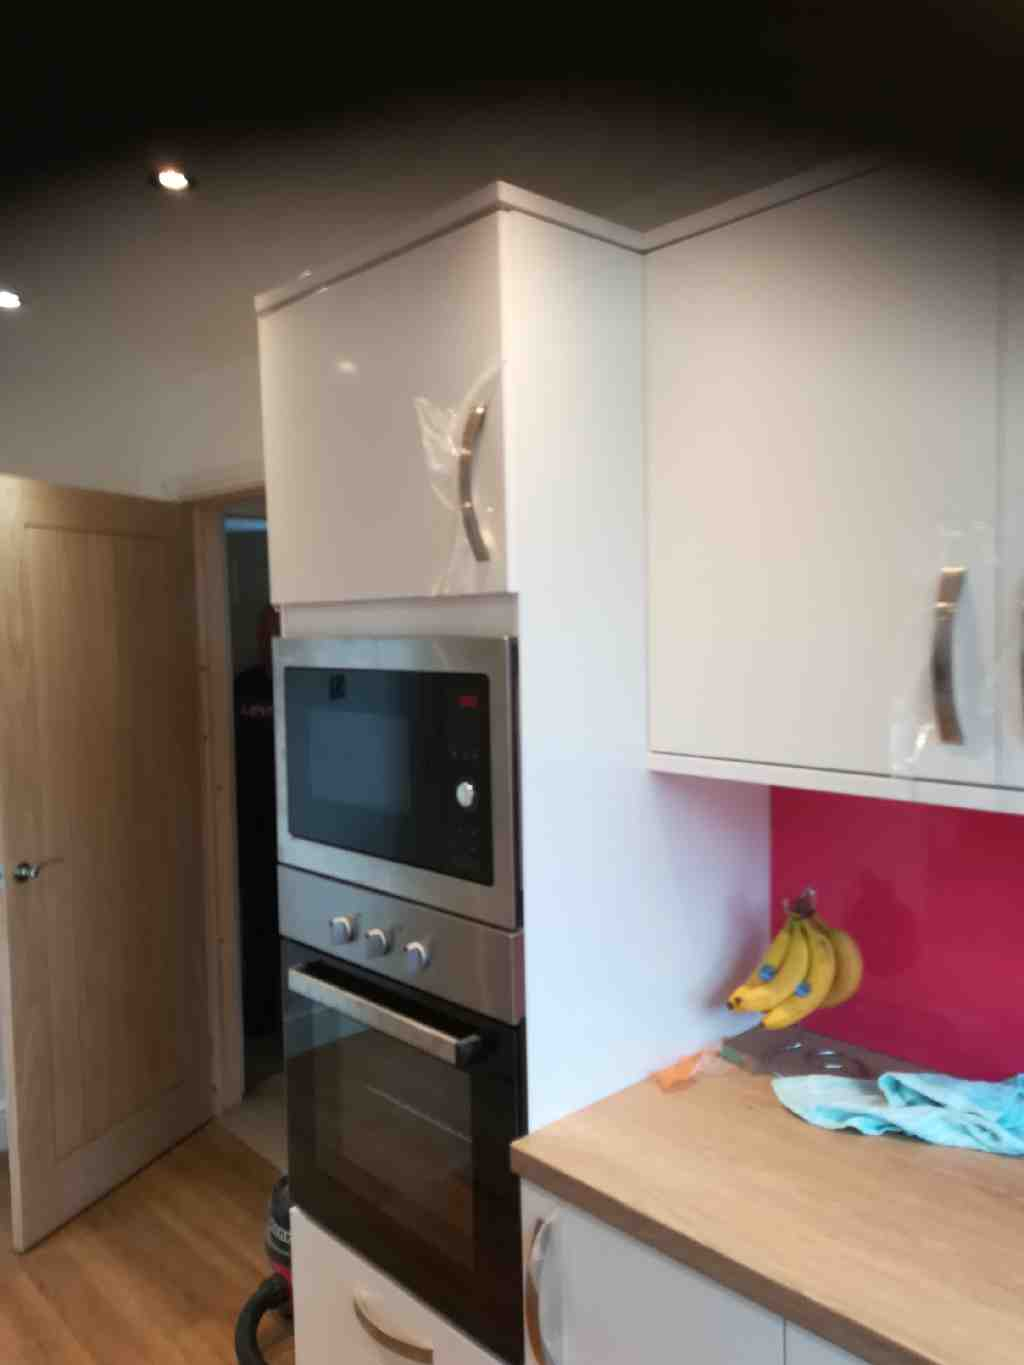 Gallery Kitchens for Visually Impaired Great Barr Birmingham 07